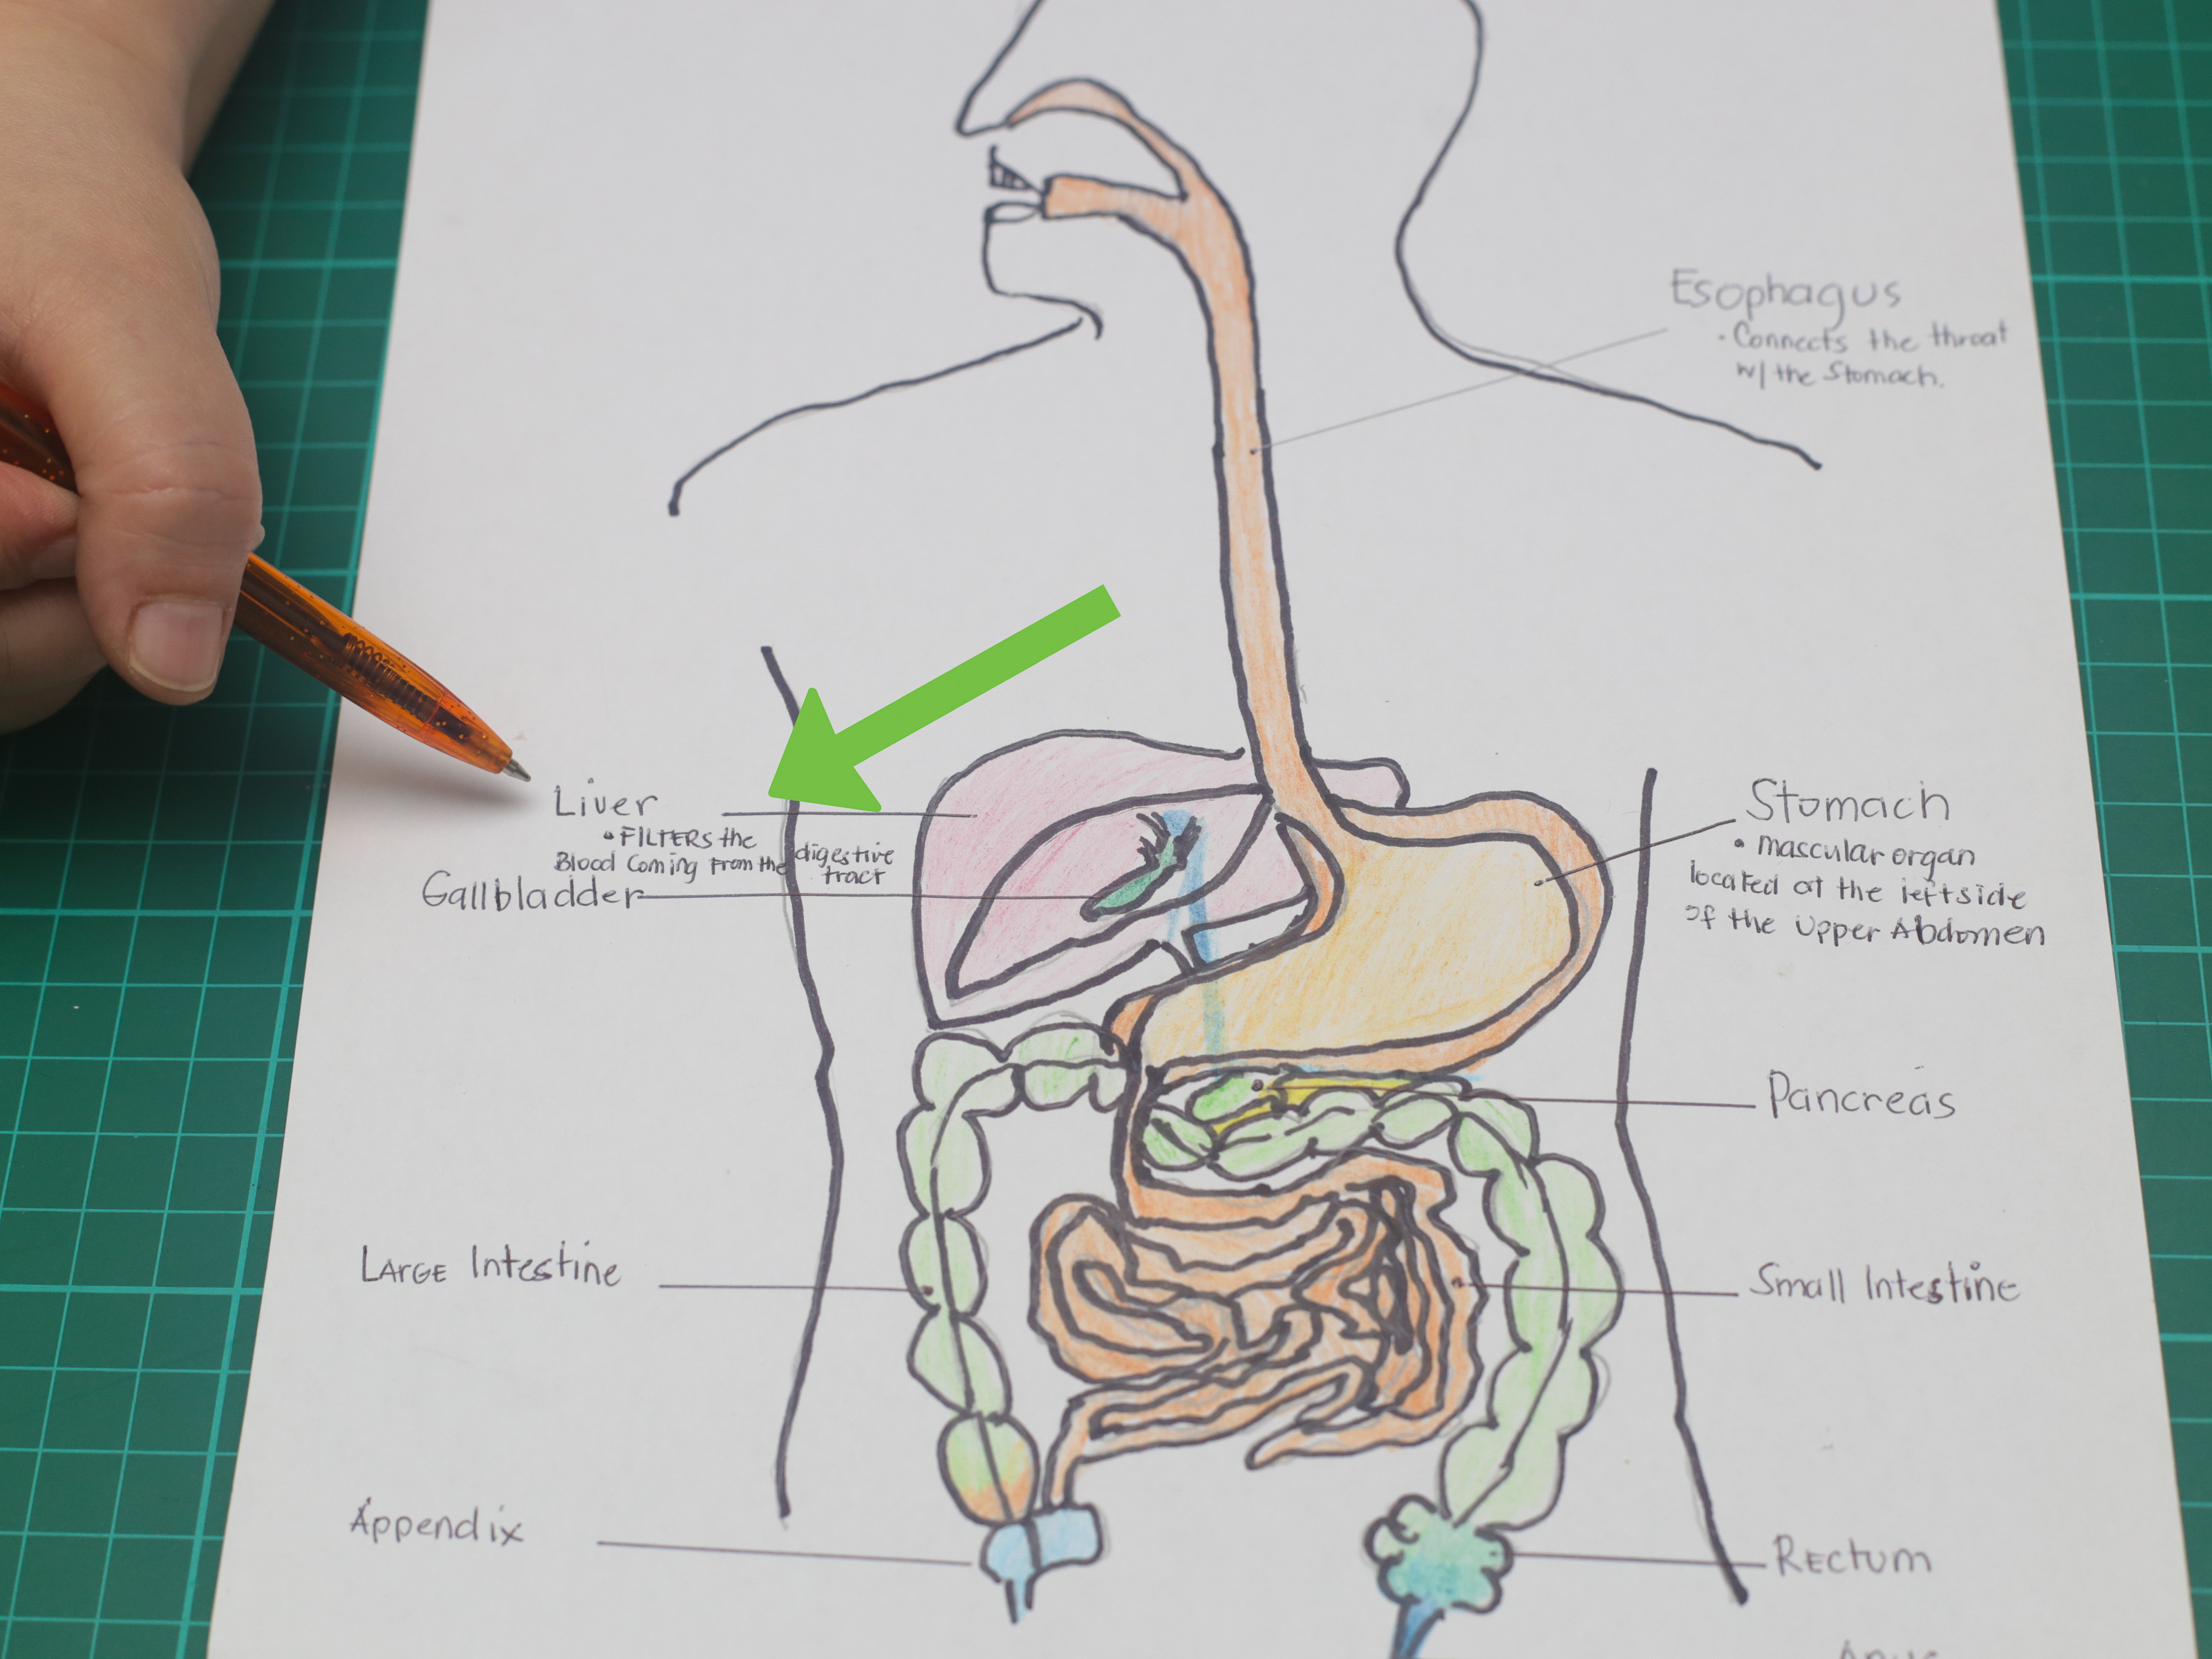 Digestive System Diagram How To Draw A Model Of The Digestive System 15 Steps